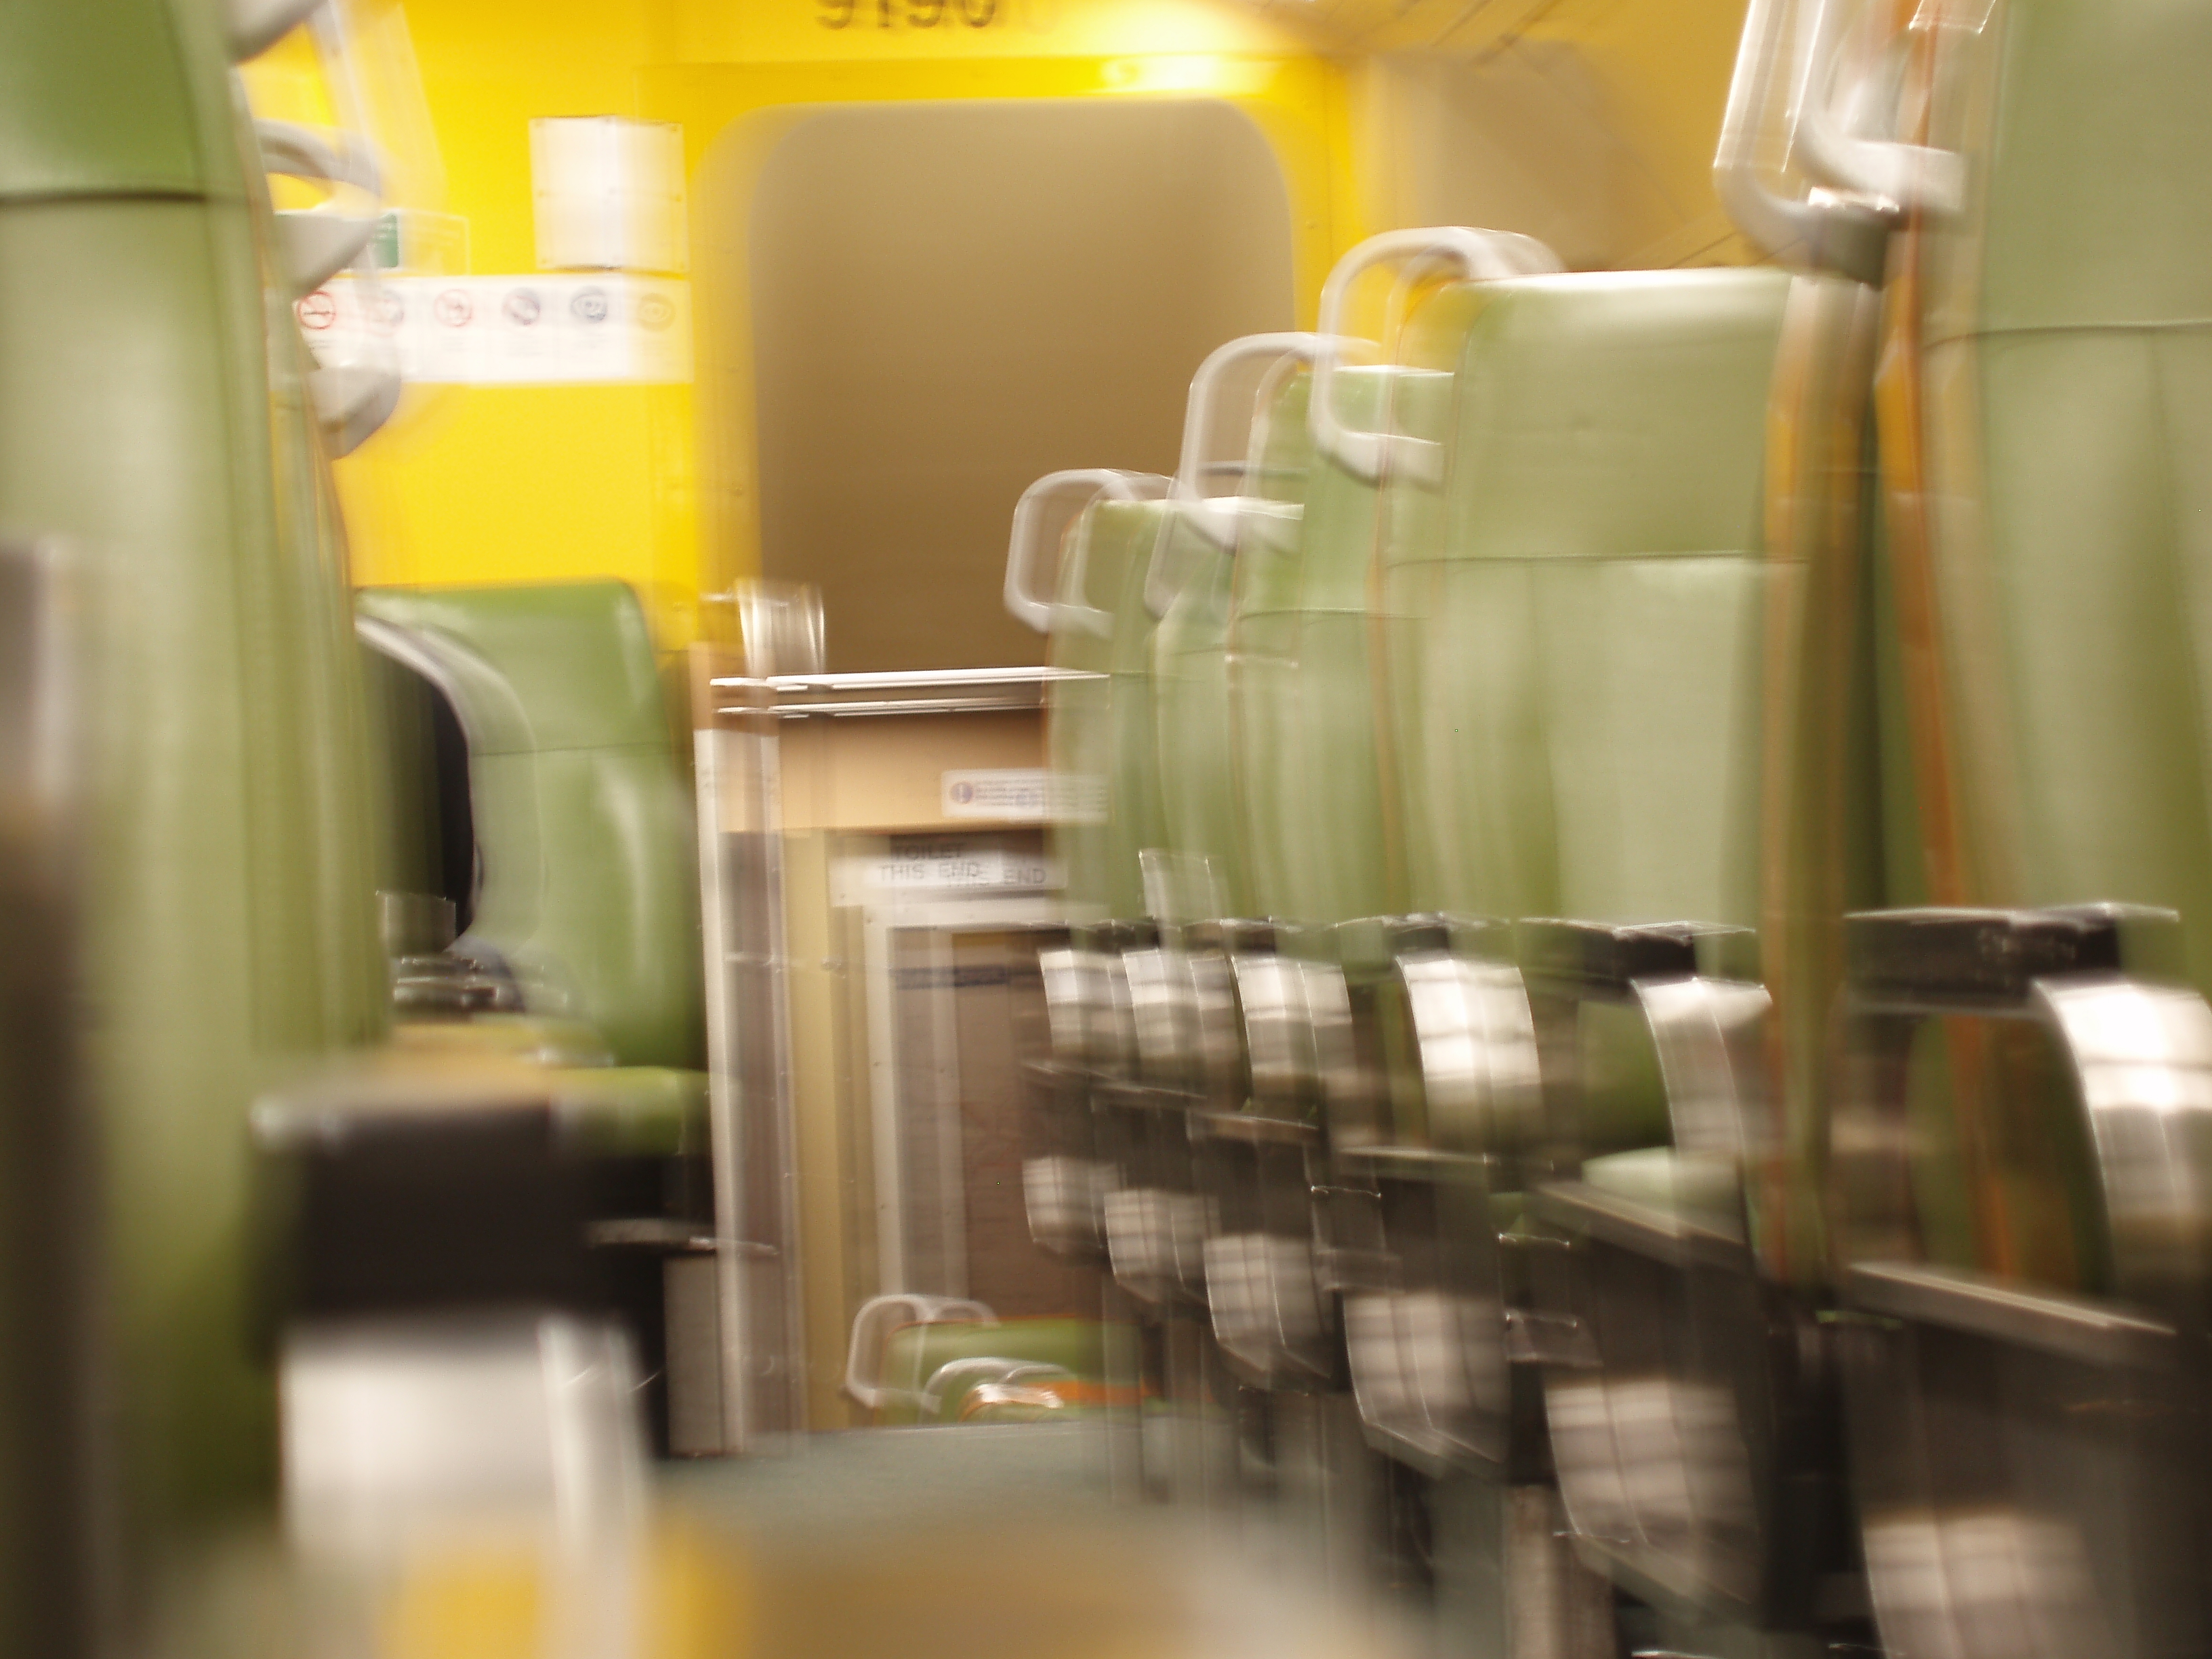 abstract blurred interior of a train passenger car